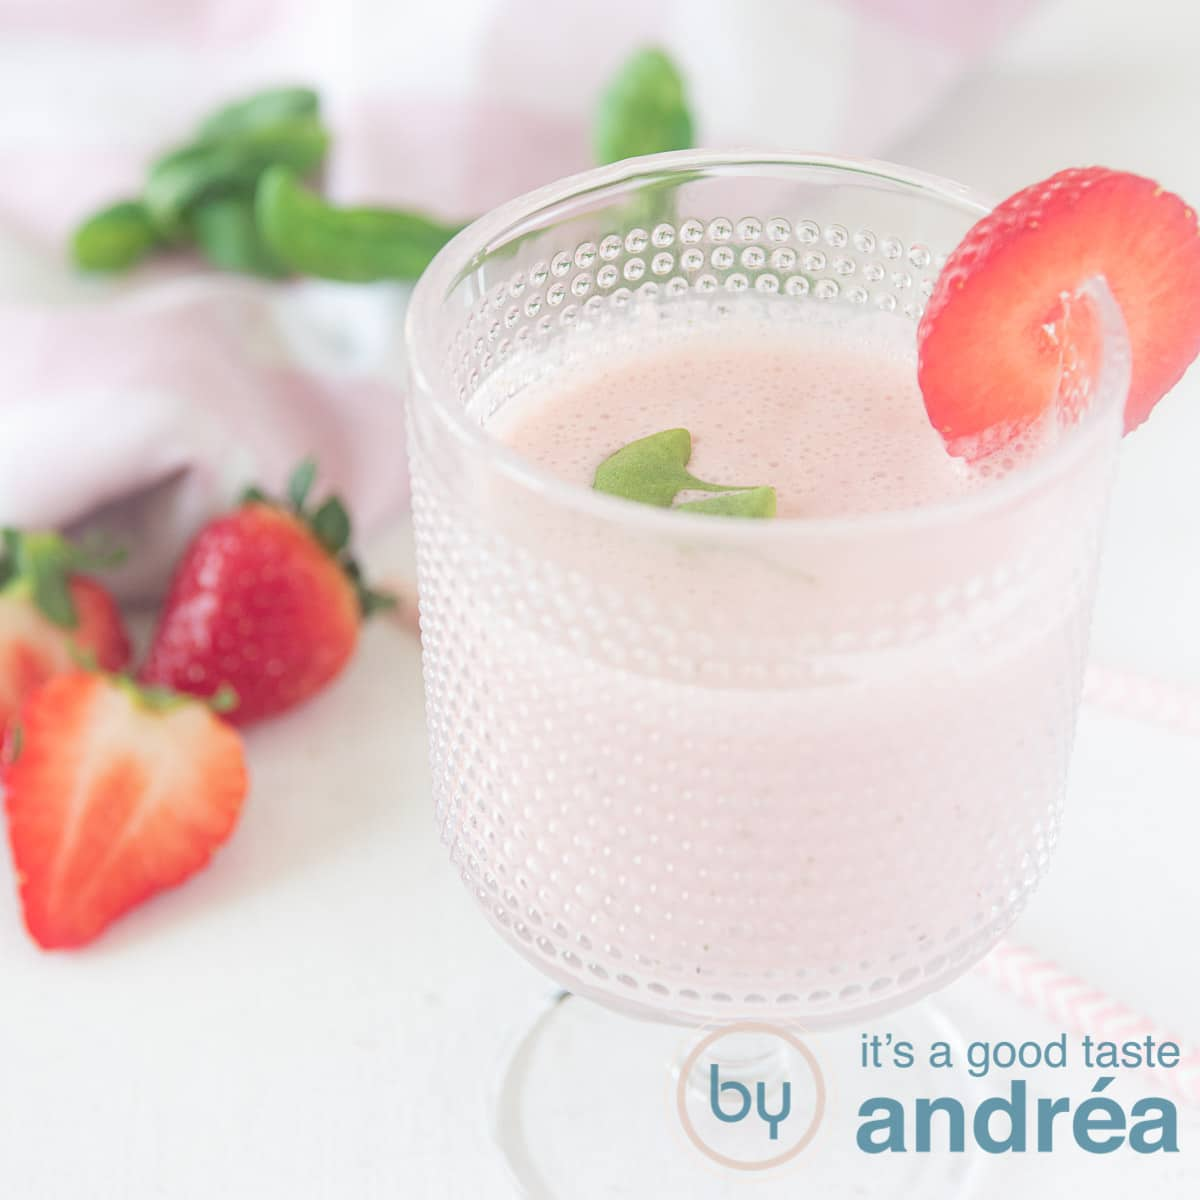 a square photo with a glass filled with a smoothie with strawberries and basil